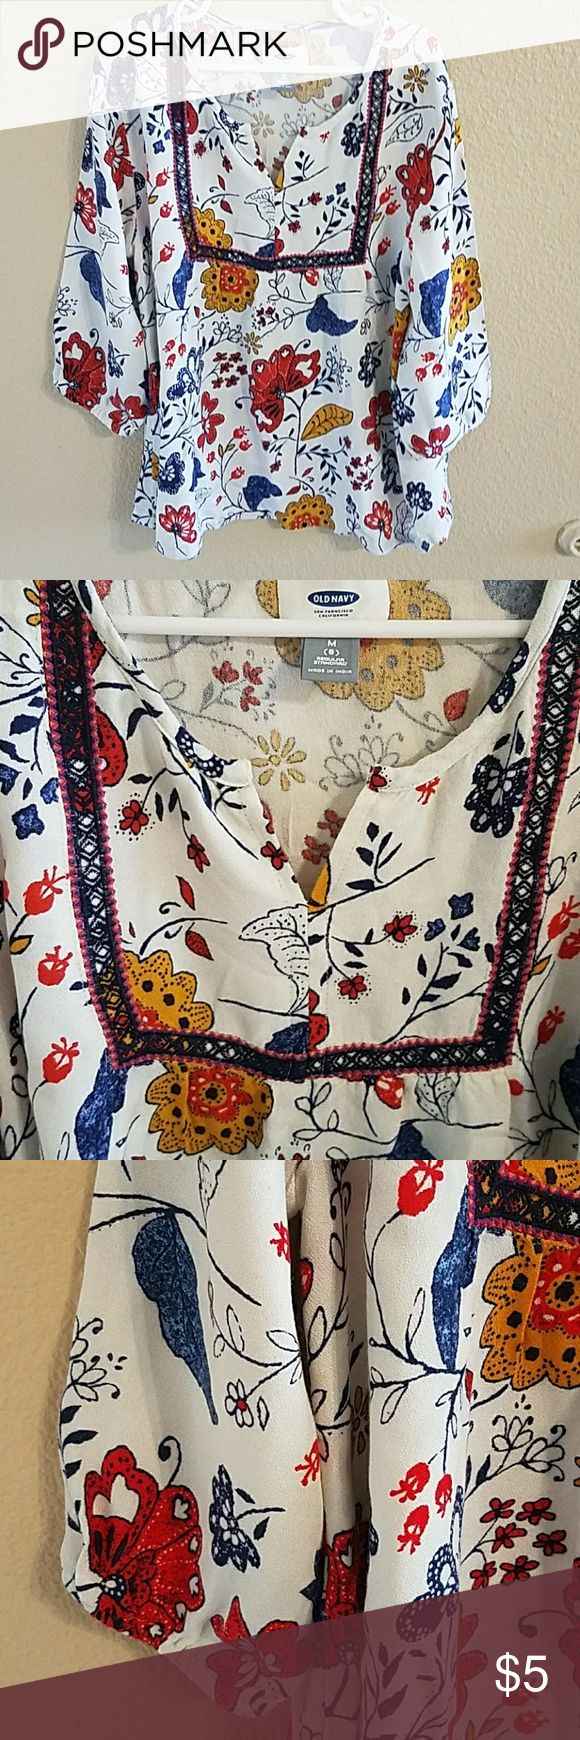 Old Navy Boho Top Size 8 Adorable! Boho Style Old Navu Floral Top Size 8  3/4 Sleeve V Neck and Embroidered Detail. Soft and Silky. Excellent condition worn once Old Navy Shirts & Tops